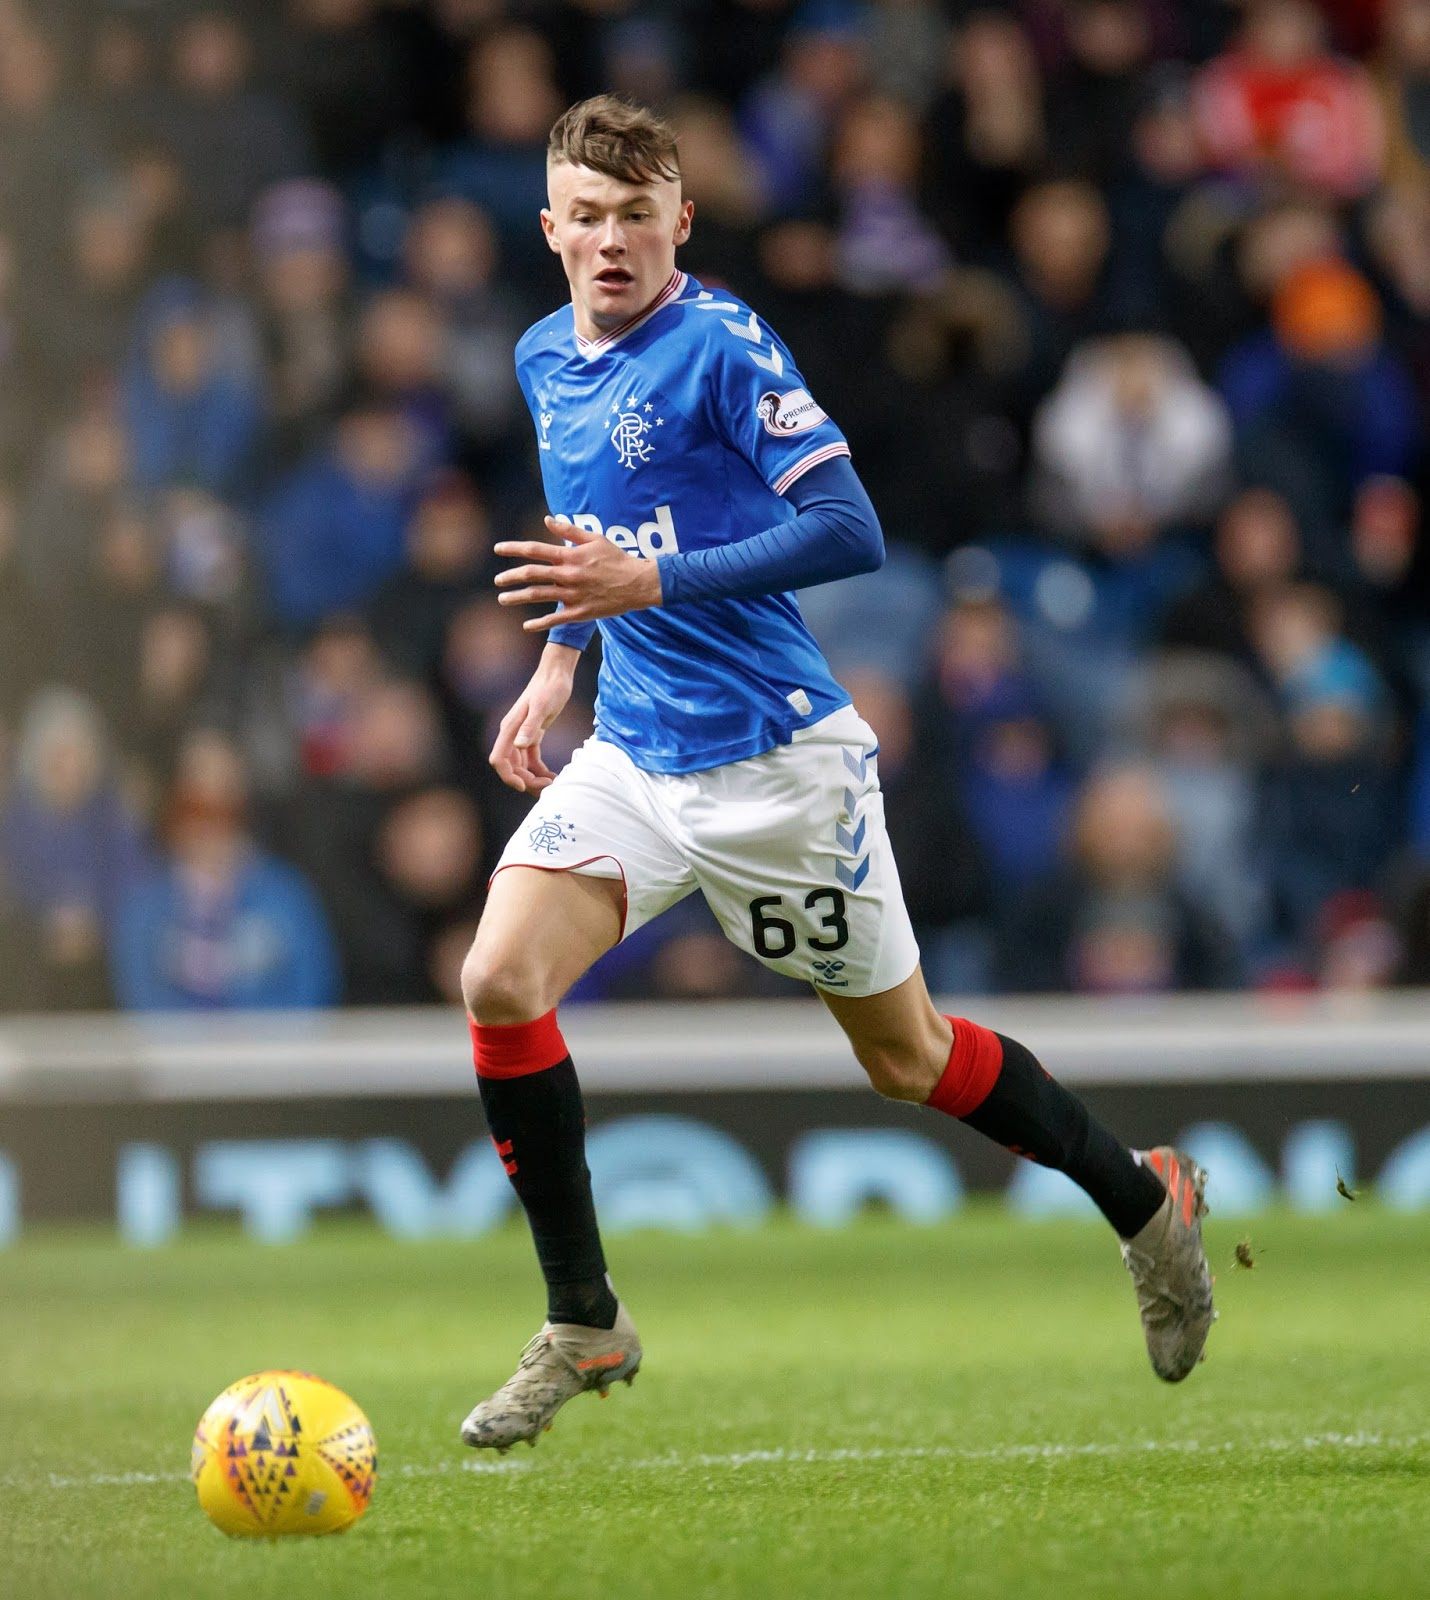 Rangers' rising star could save Rangers millions